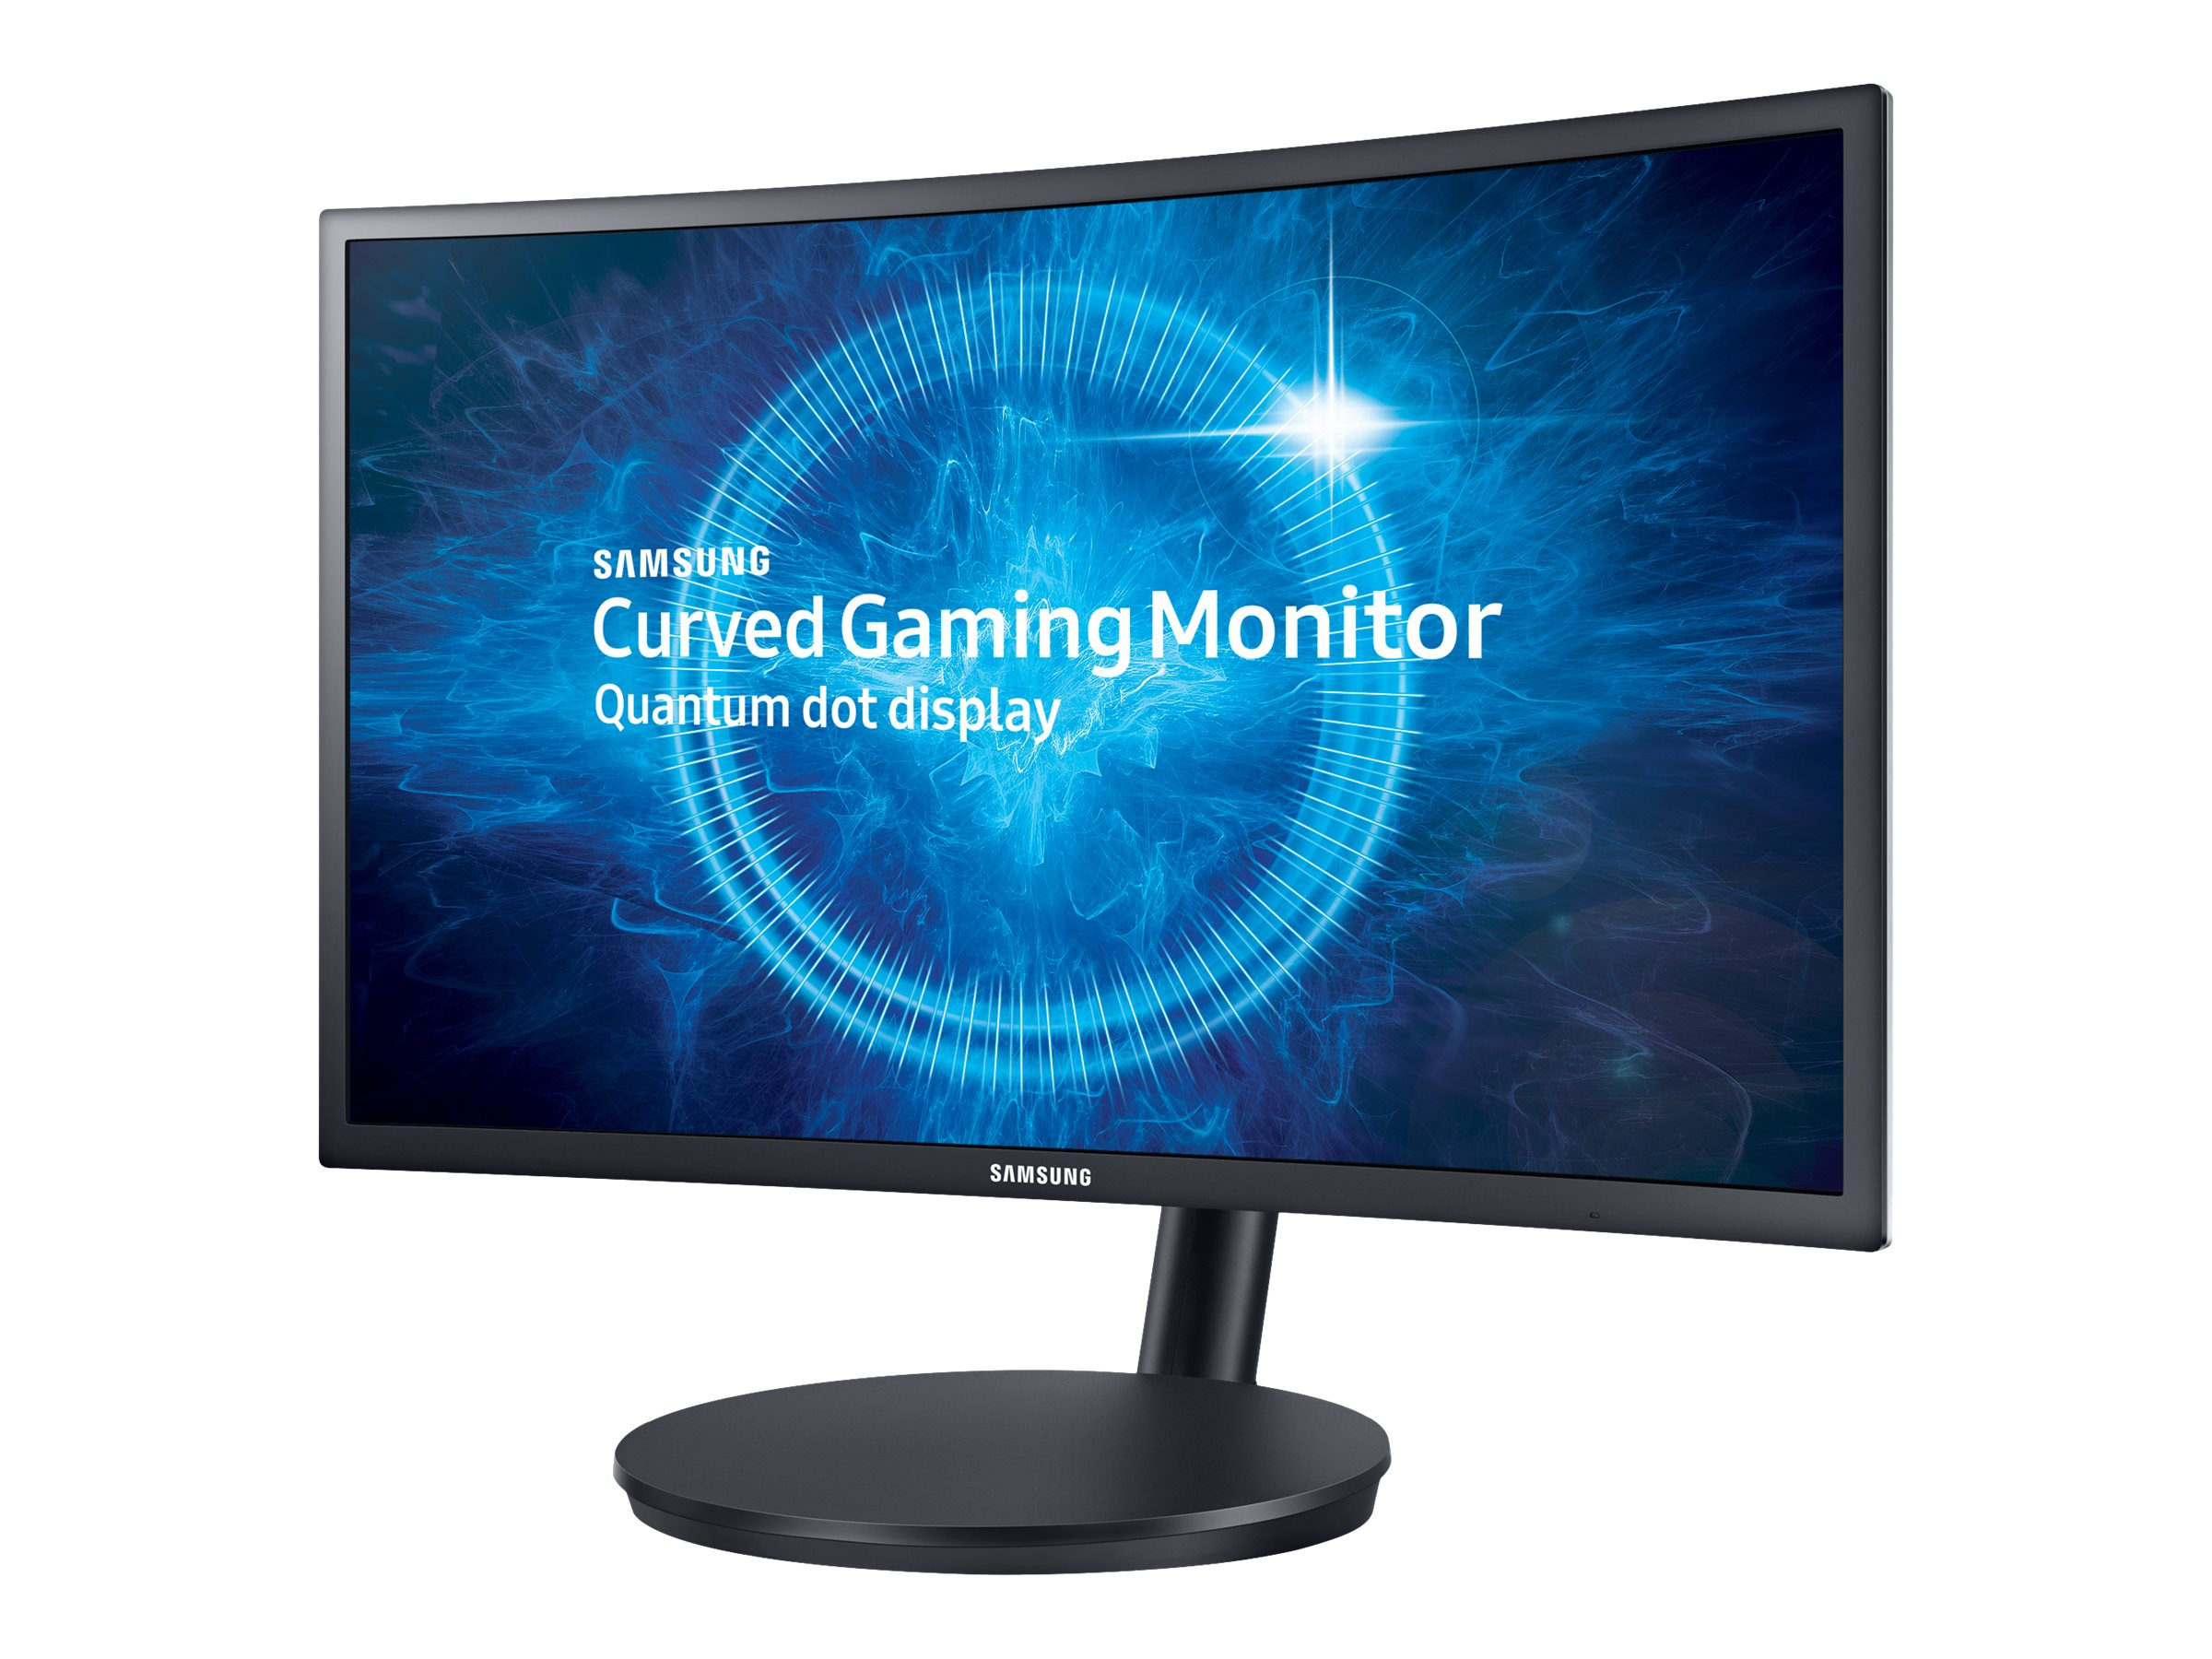 Samsung 24 CFG70 Full HD LED Curved Gaming Monitor, Black, LC24FG70FQNXZA